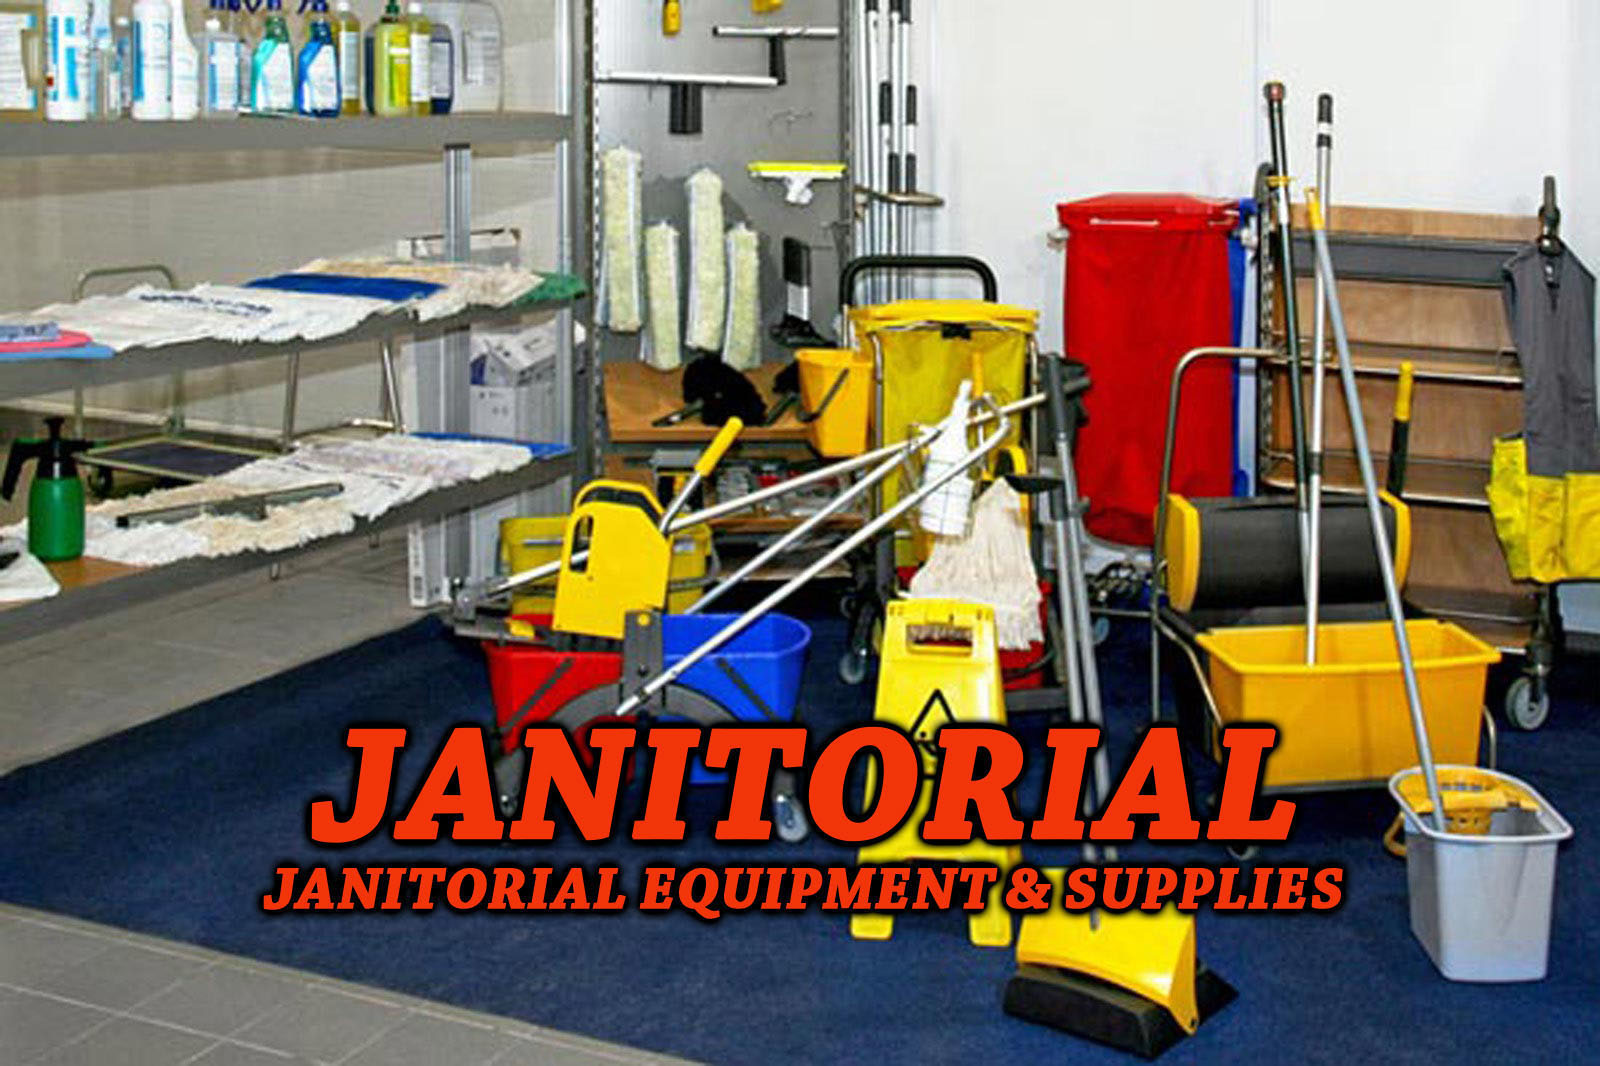 Janitorial Equipment and Supplies